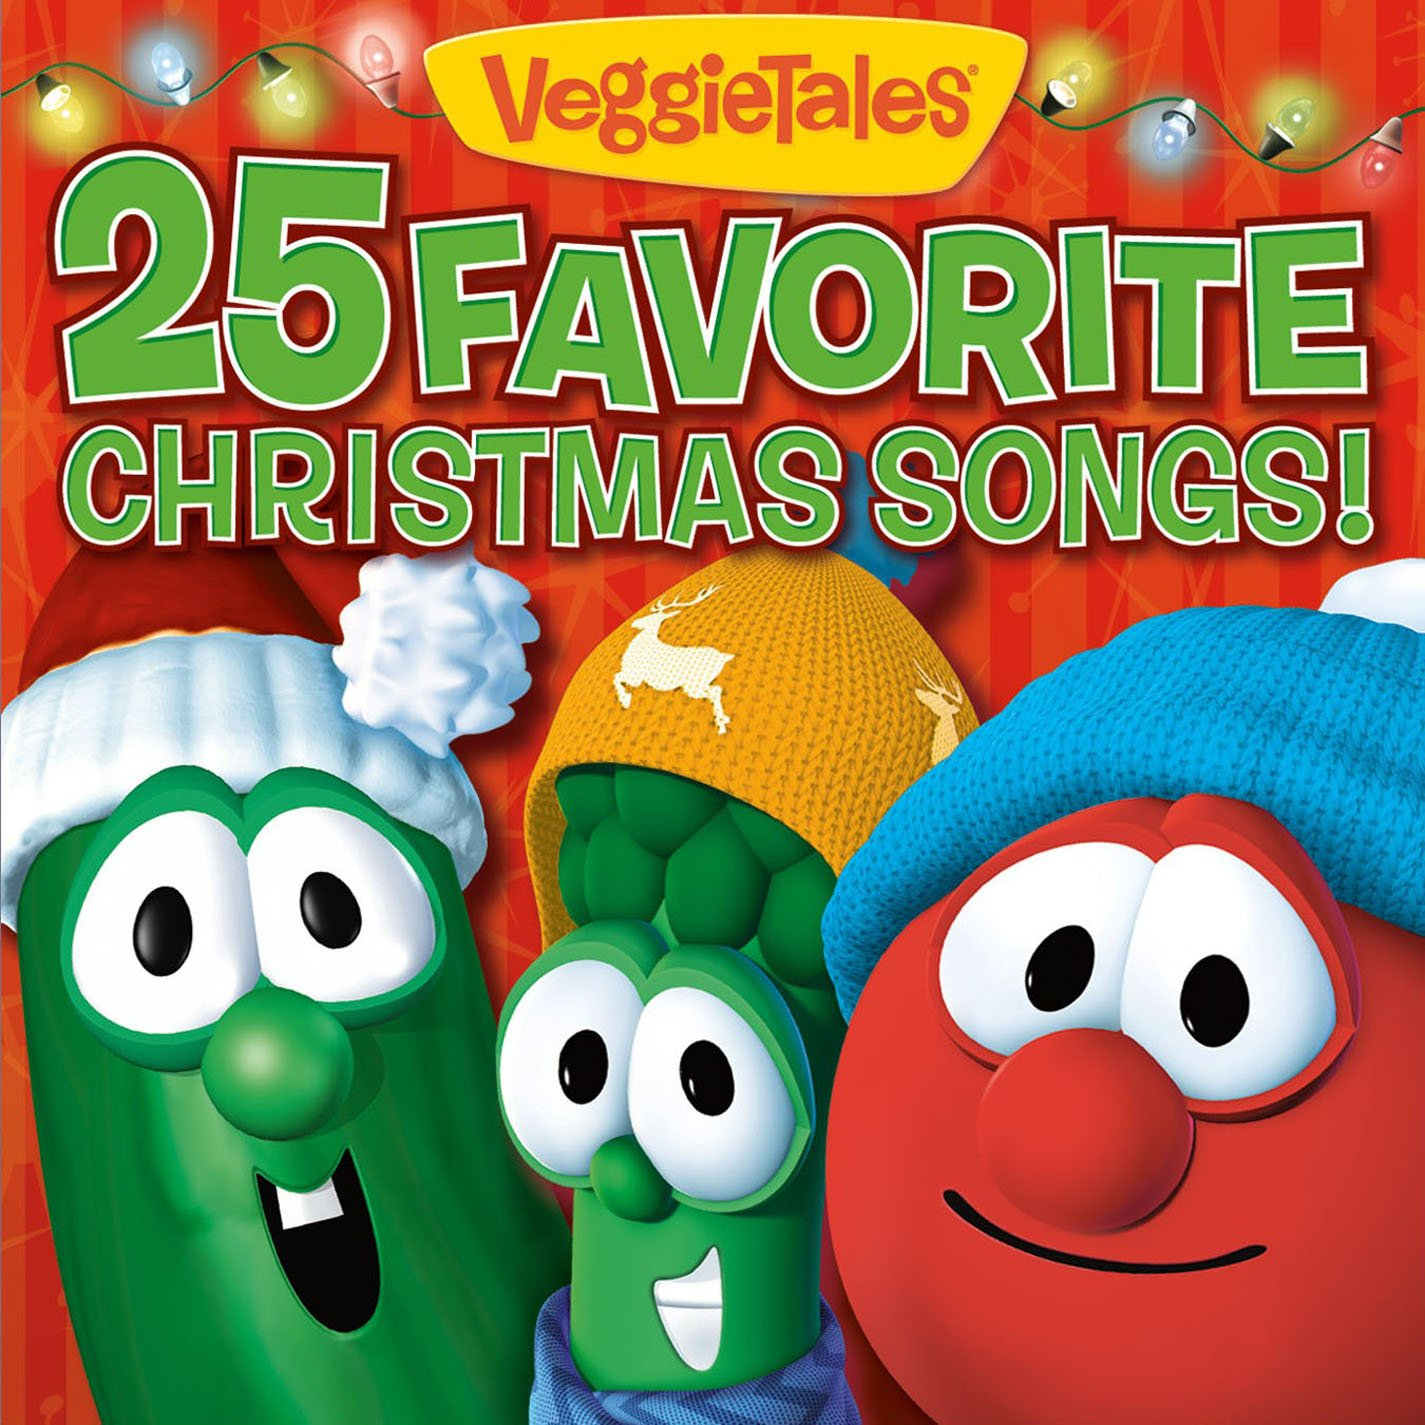 VeggieTales - 25 Favorite Christmas Songs! - Amazon.com Music